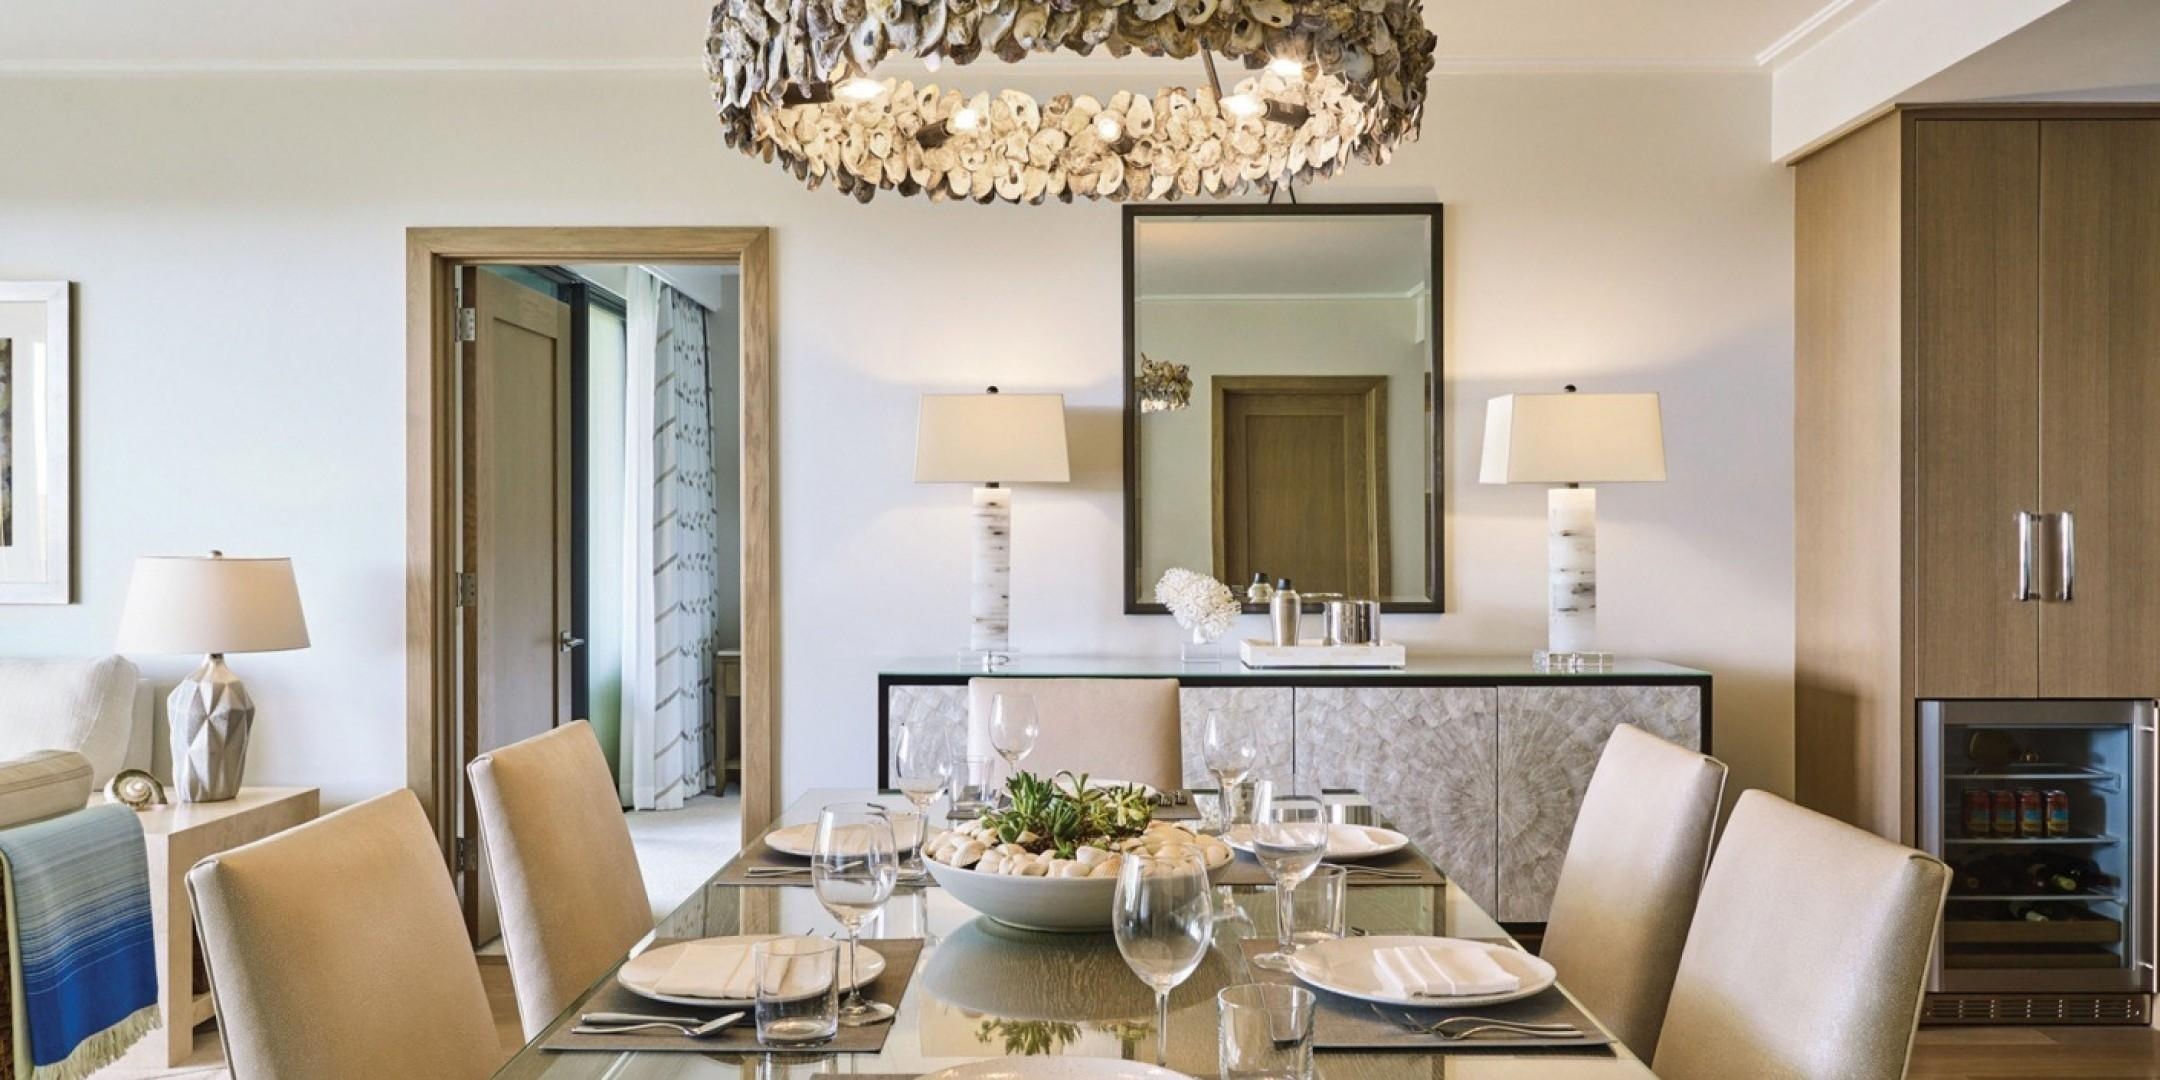 The residences feature formal dining spaces and are beautifully appointed with fine finishes and details.